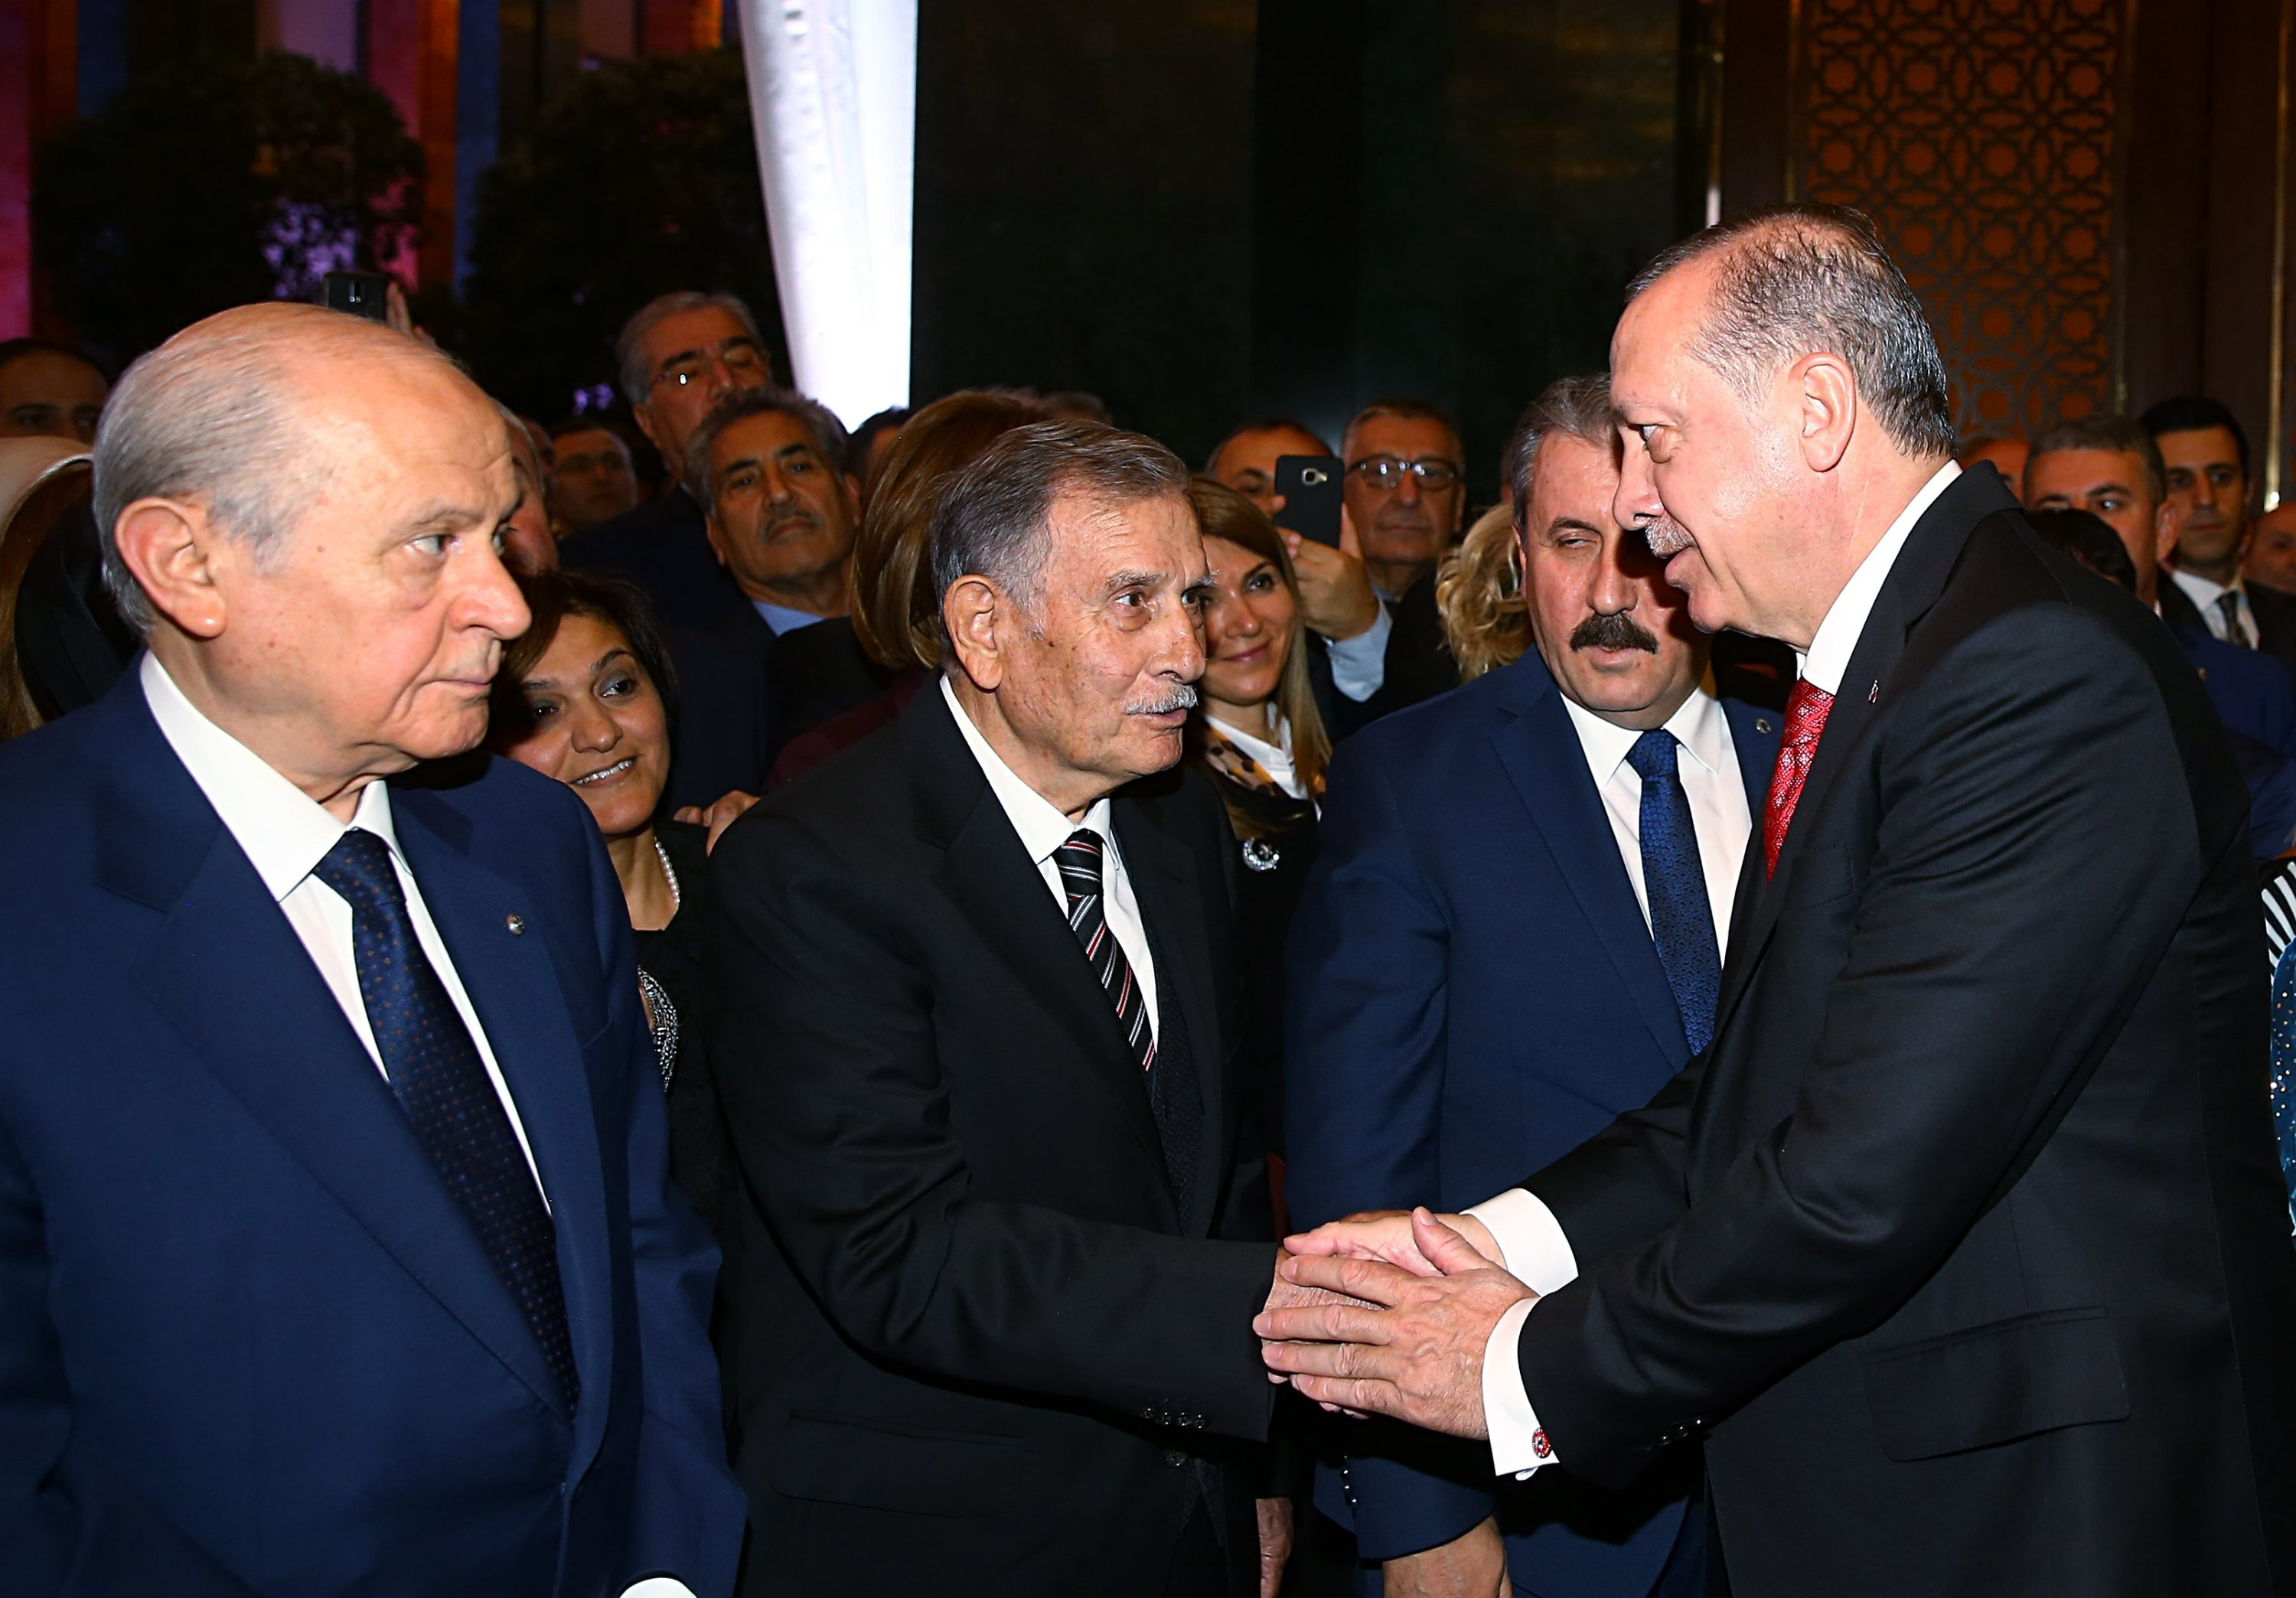 President Recep Tayyip Erdoğan (R) shakes hands with Presidential High Advisory Board (YİK) member and former Parliament Speaker and Prime Minister Yıldırım Akbulut (2nd L), alongside MHP leader Devlet Bahçeli (L) and BBP chair Mustafa Destici, during the reception held to mark Oct 27, 2017 Republic Day, in the capital Ankara, Turkey, in this image provided on April 14, 2021. (AA Photo).